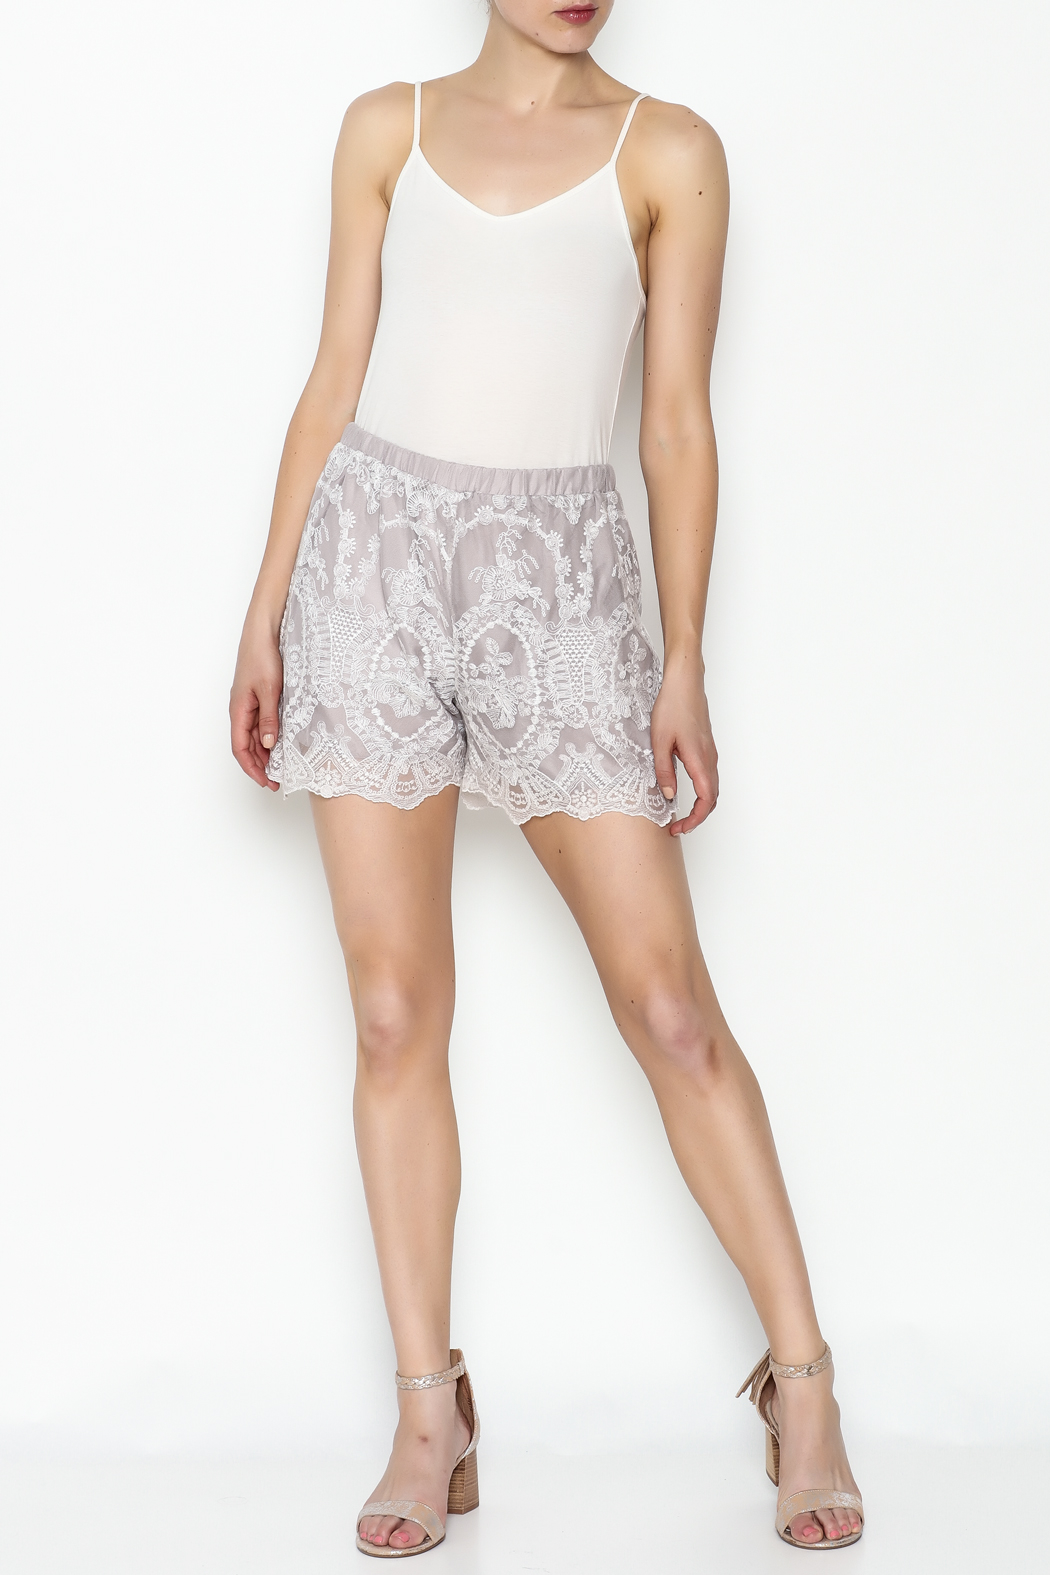 Love & Liberty Mamie Shorts - Side Cropped Image